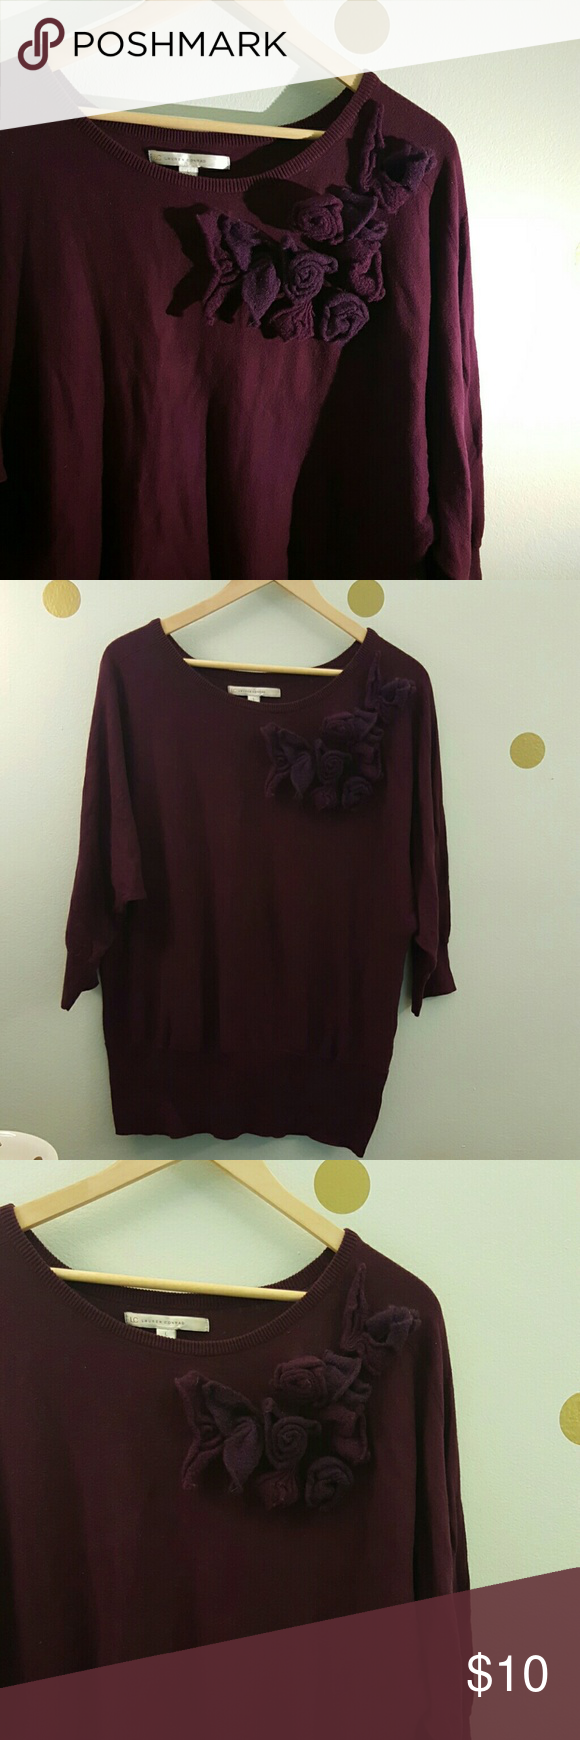 LC by Lauren Conrad purple oversized sweater It is a plum purple  color. Sleeves are oversized. And it has such a pretty flowery detail by the shoulder. LC Lauren Conrad Sweaters Crew & Scoop Necks